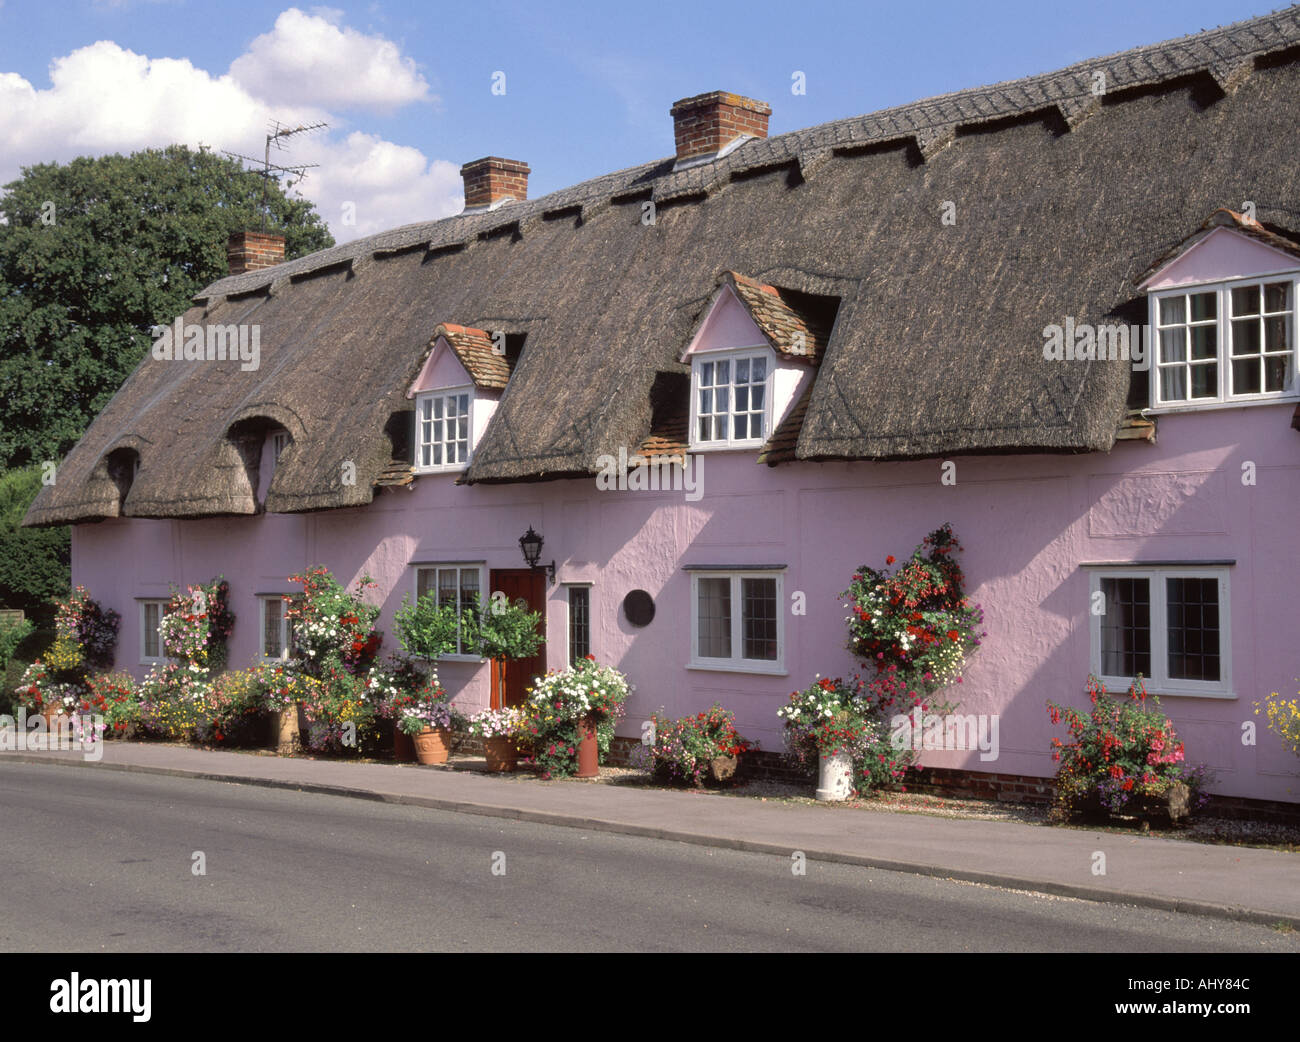 Pleshey Thatched Roof Cottages With Dormer Windows And